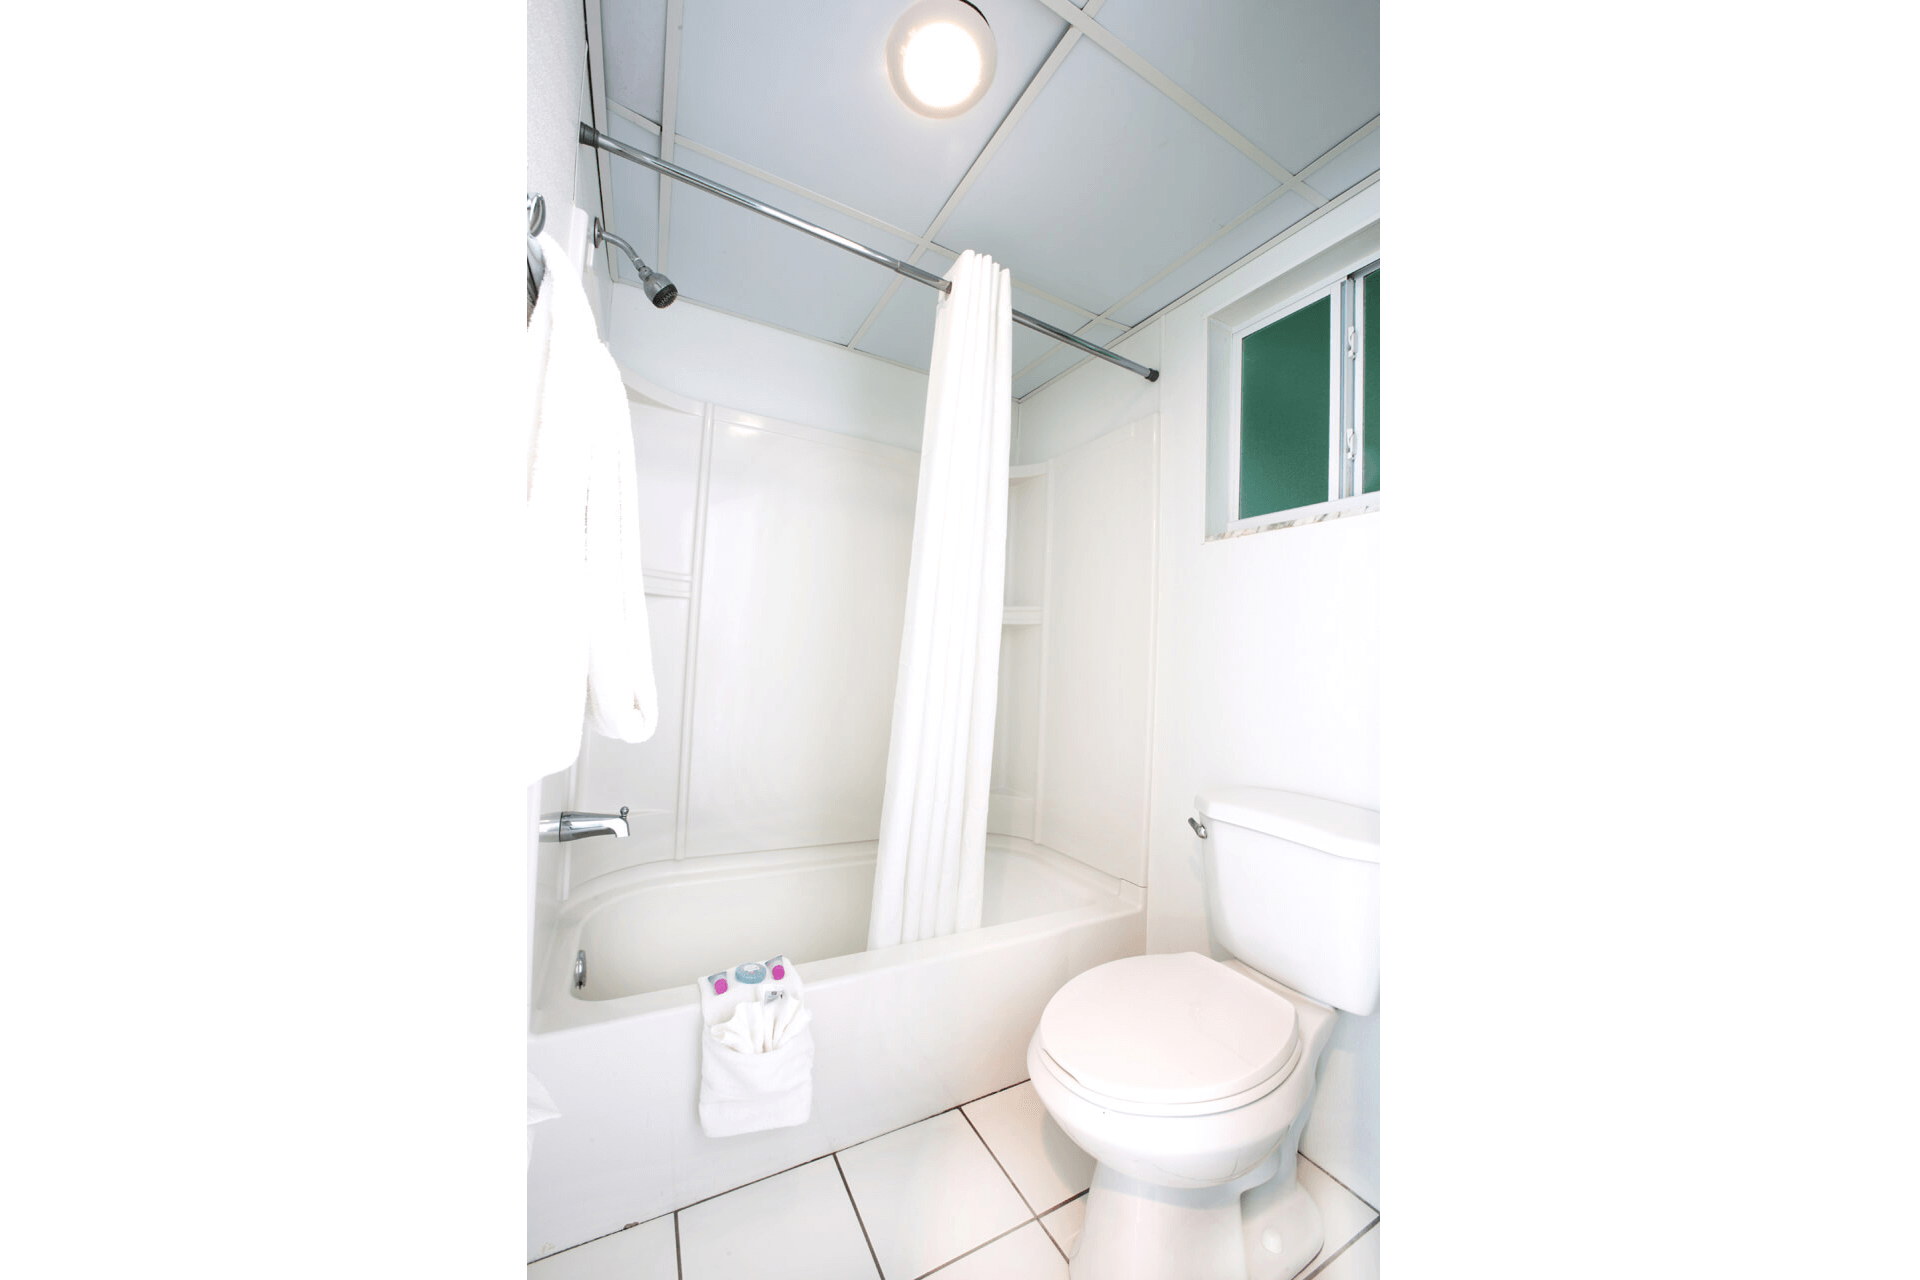 Bacehfront-Standard-Hotel-Bathroom-Fort-Myers-Beach